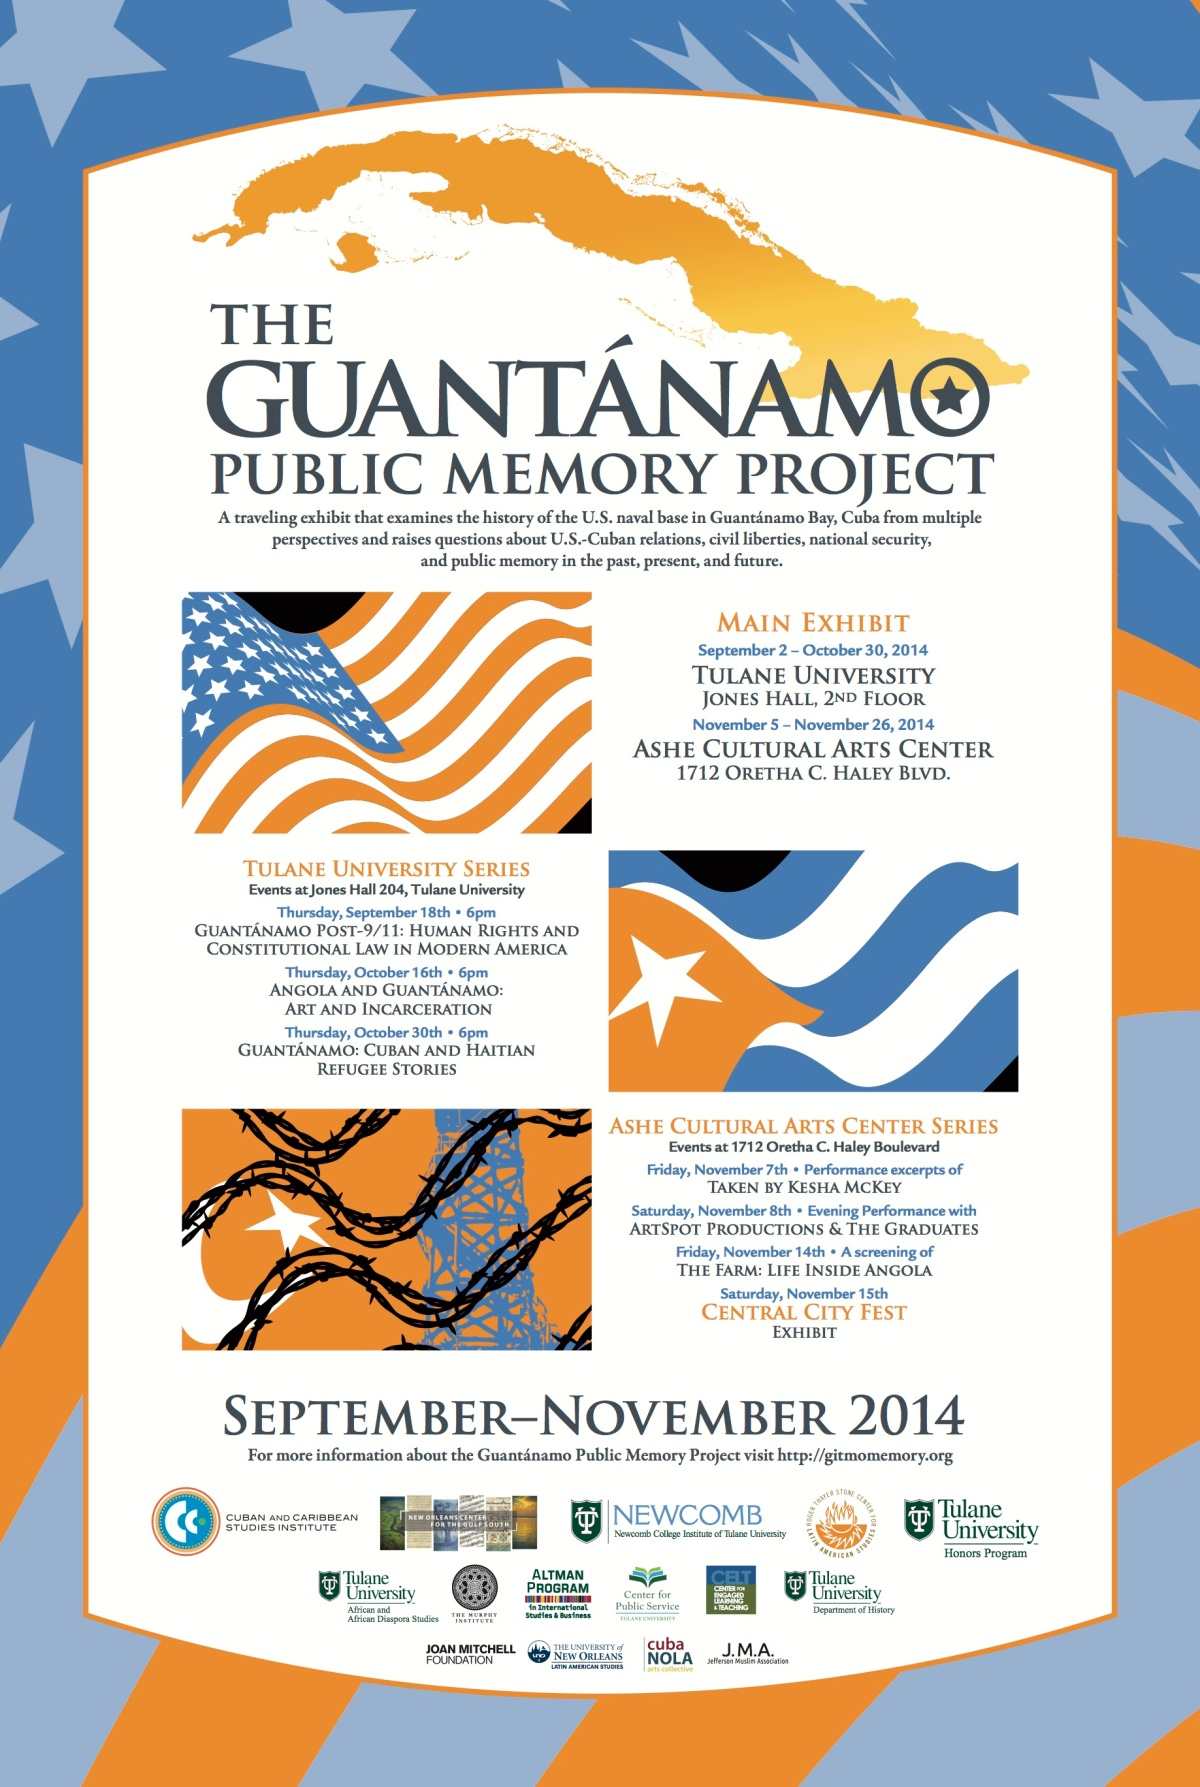 Guantánamo Public Memory Project comes to Tulane